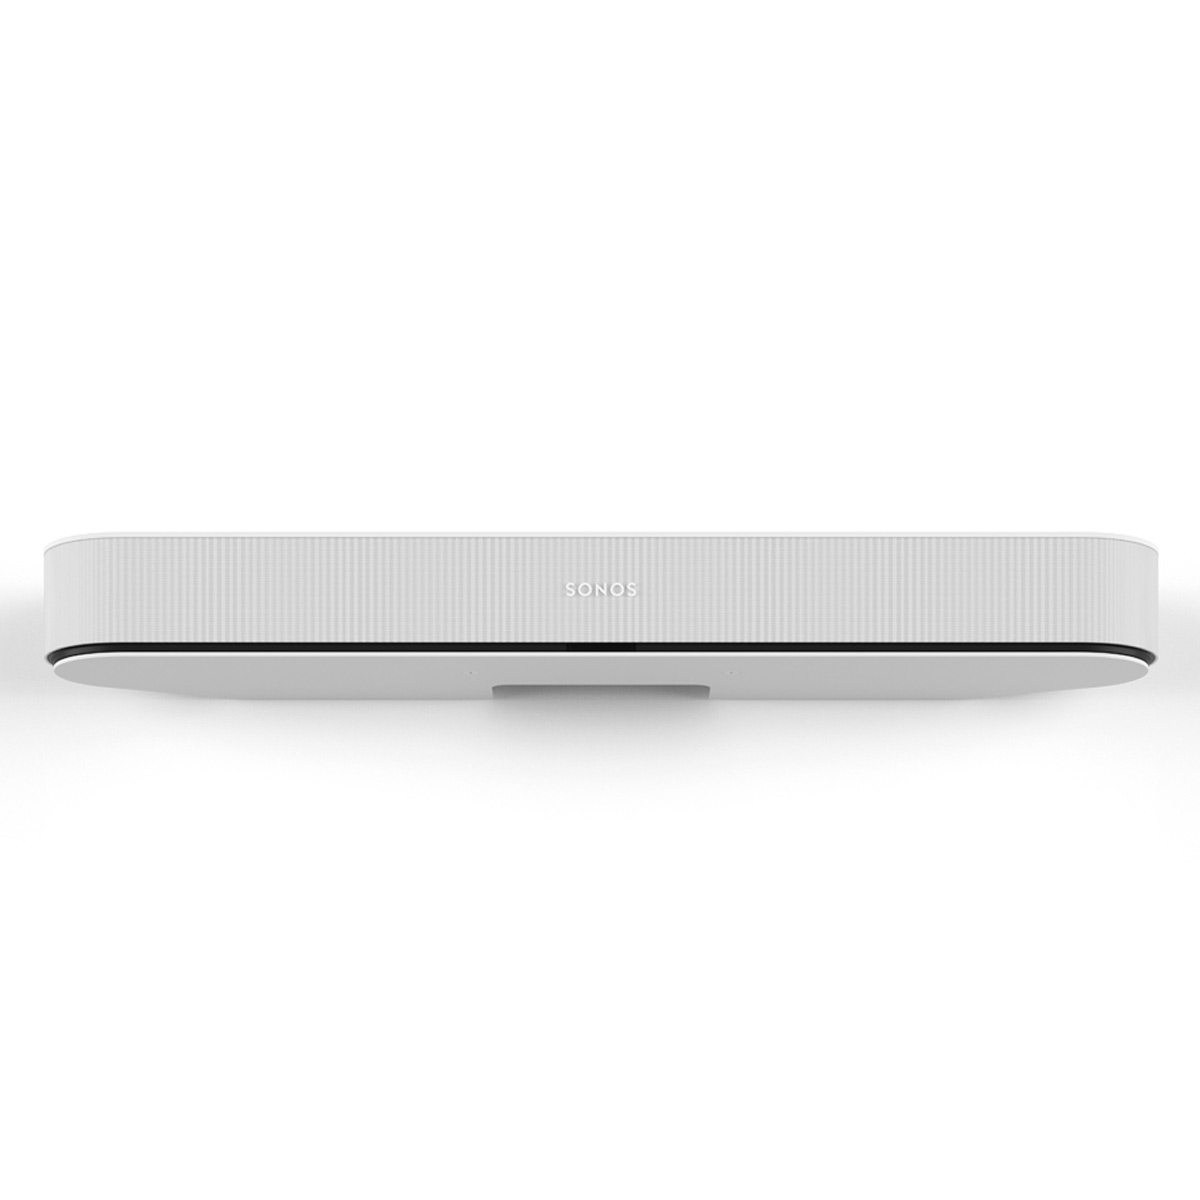 Sonos-Beam-Compact-Smart-Sound-Bar-with-Voice-Control thumbnail 26